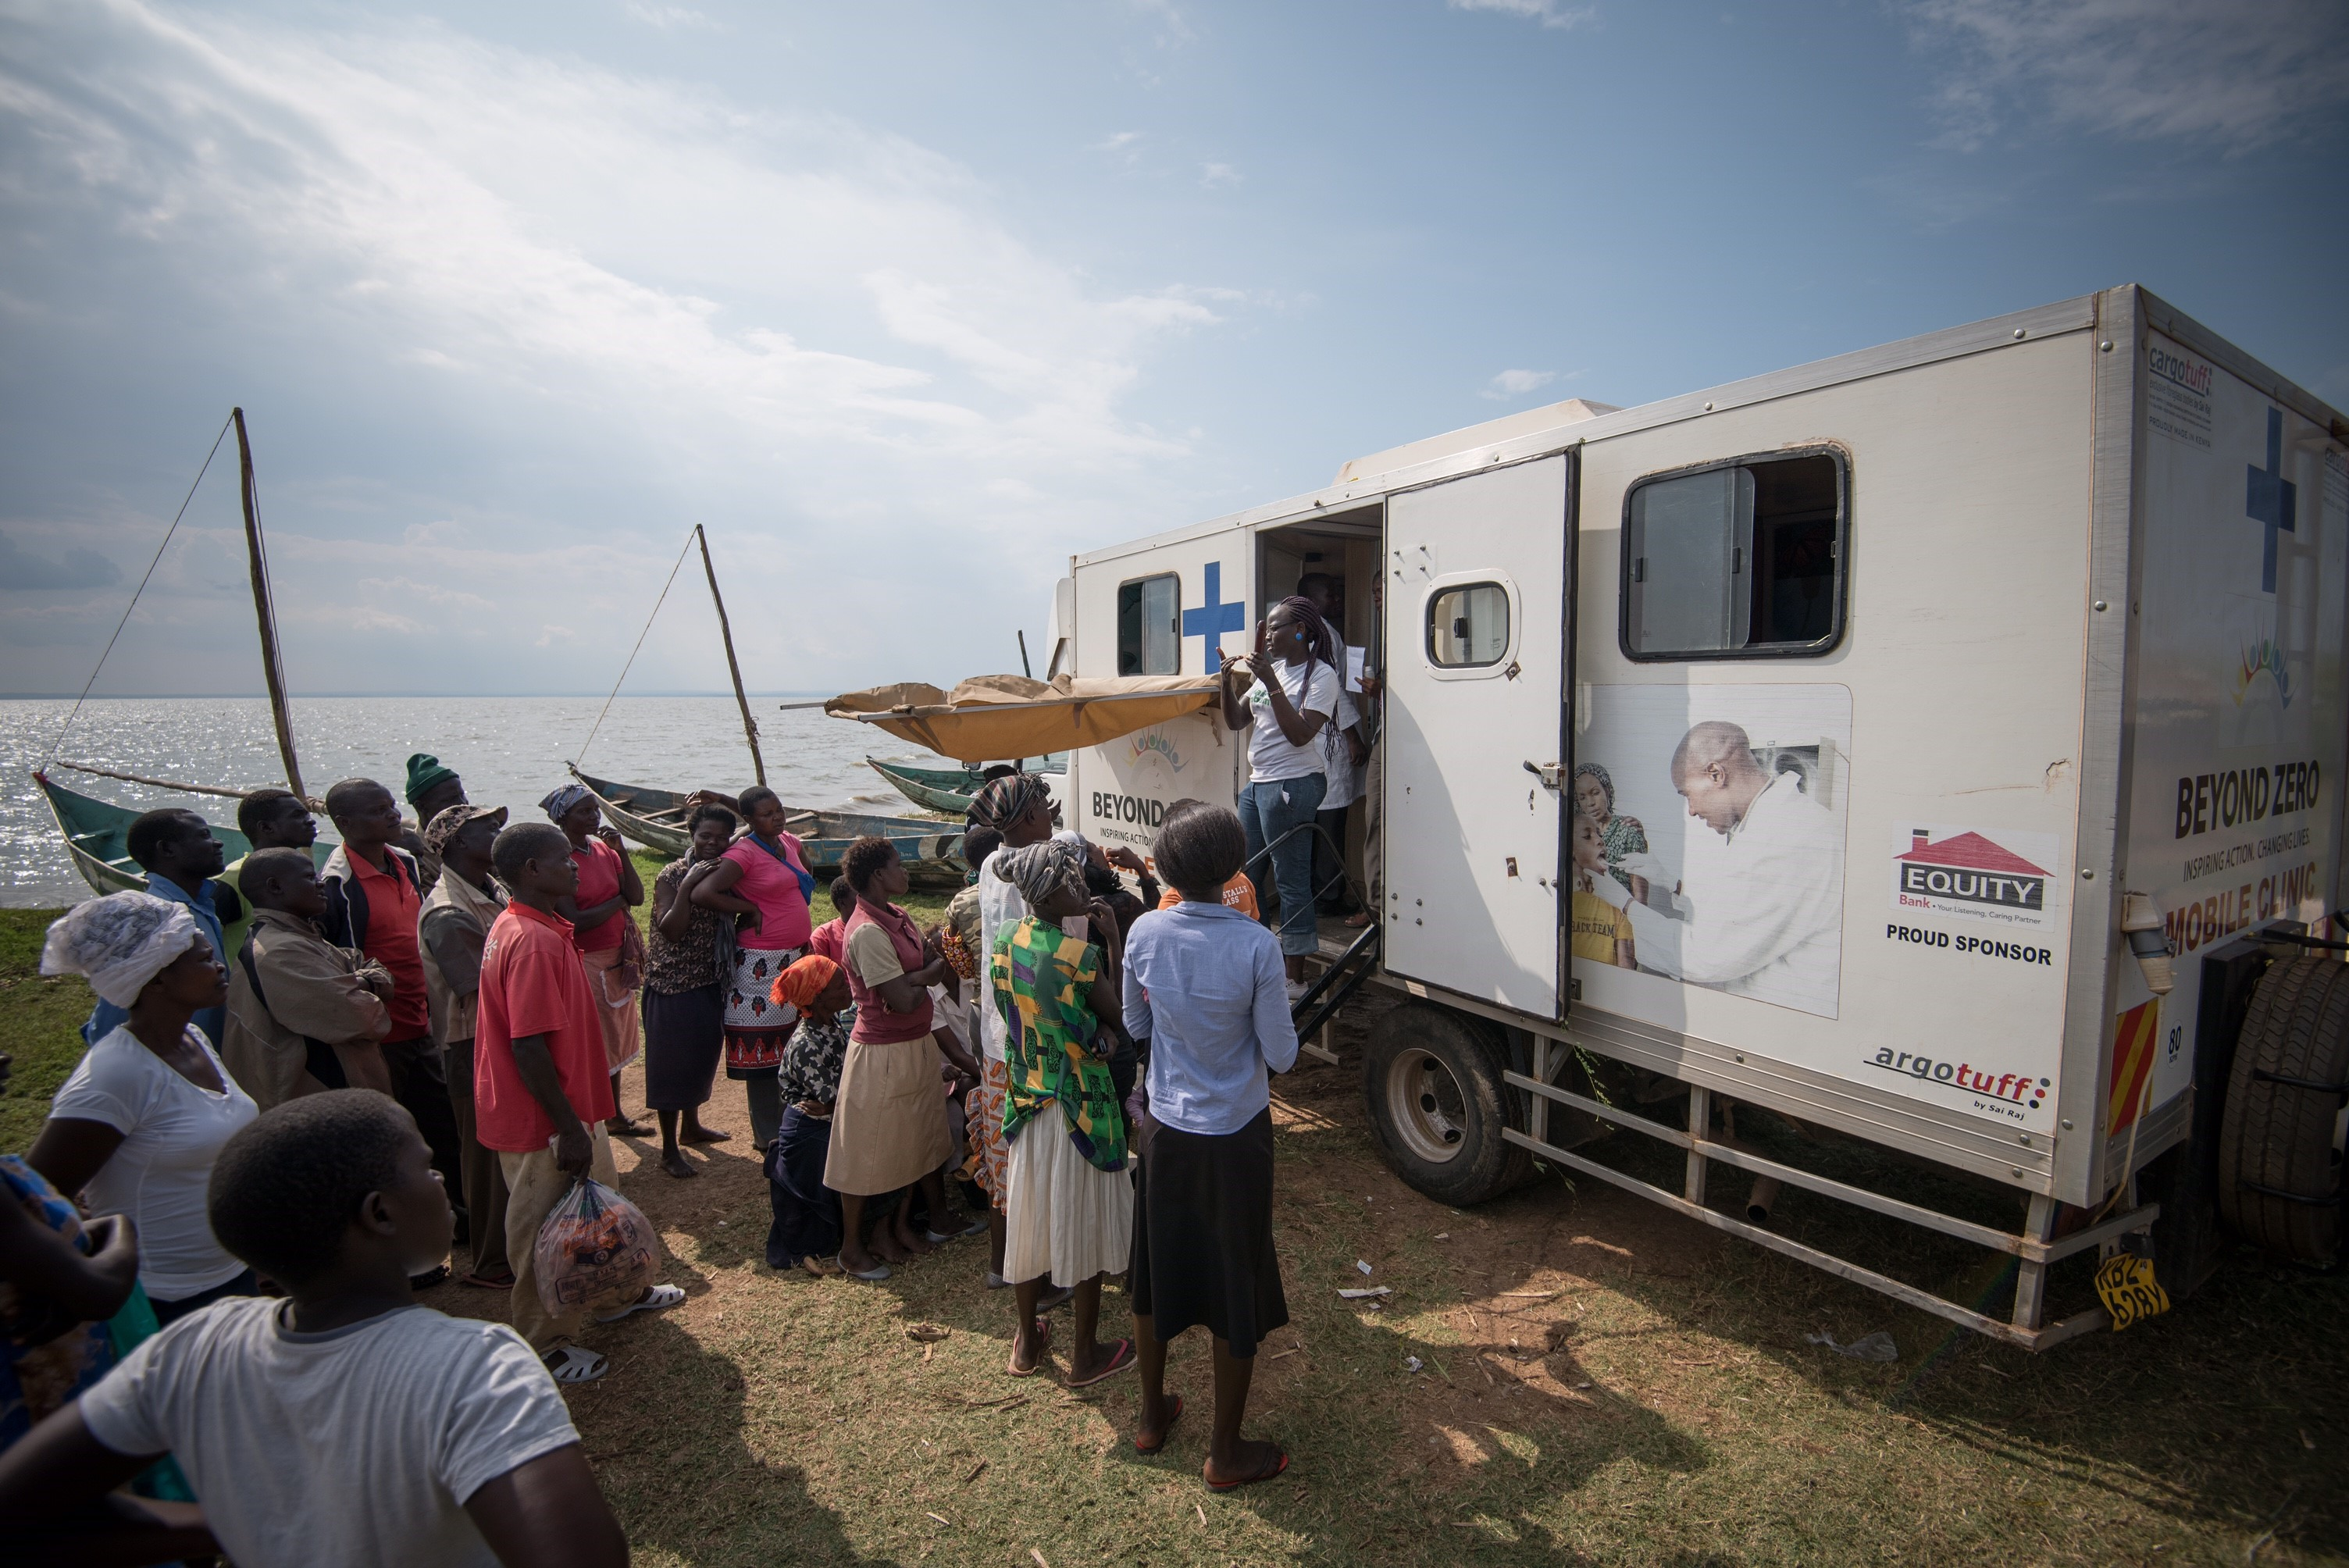 A line outside a mobile health clinic in Kenya. Source: Enabling Sustainable Health Equity (ESHE) Project